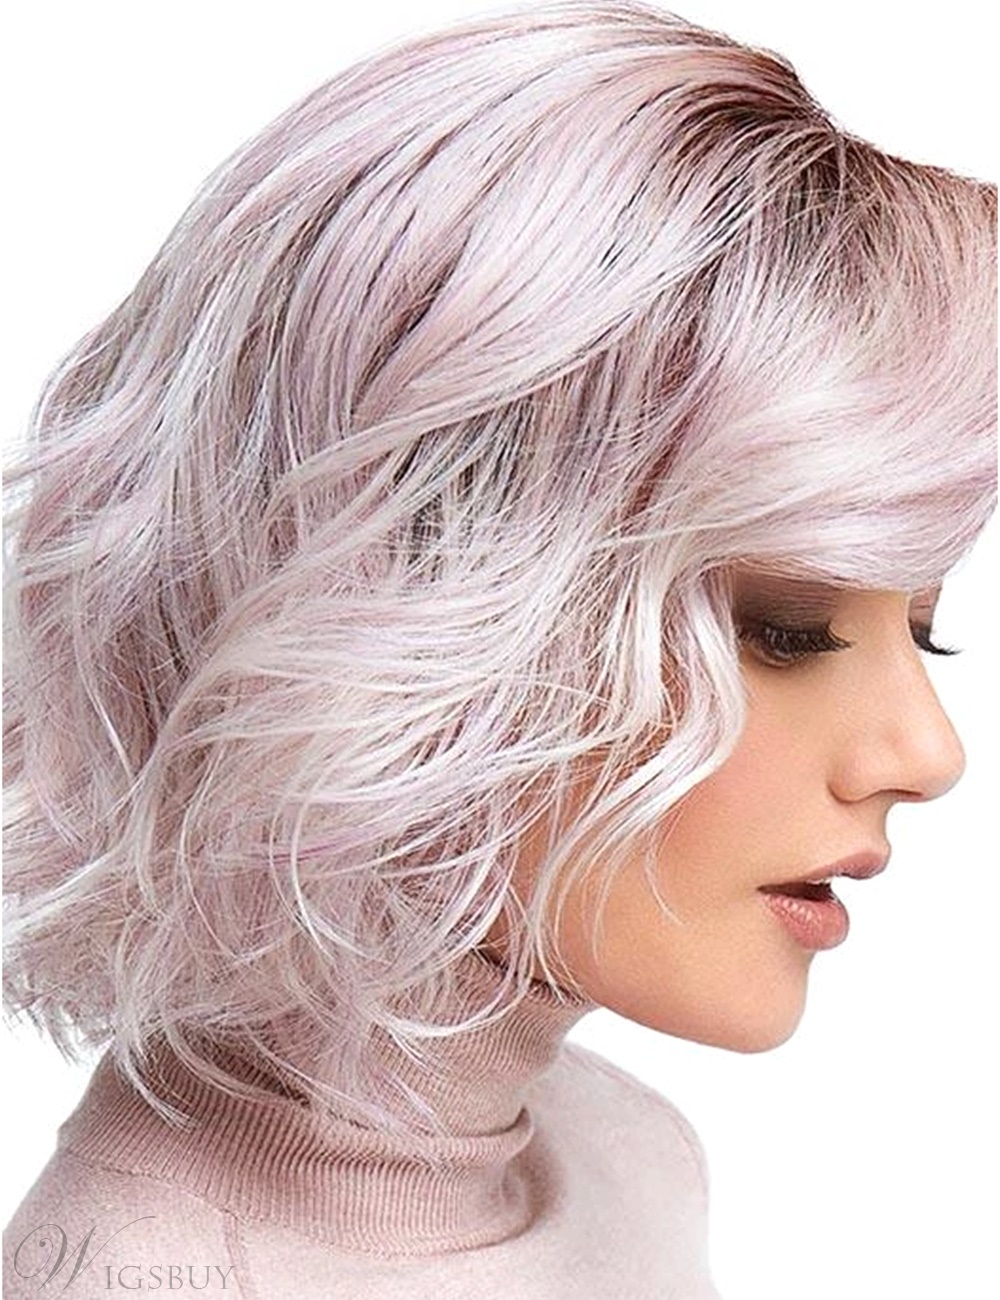 Medium Bob Style Synthetic Hair Wavy Pink Wig 12 Inches